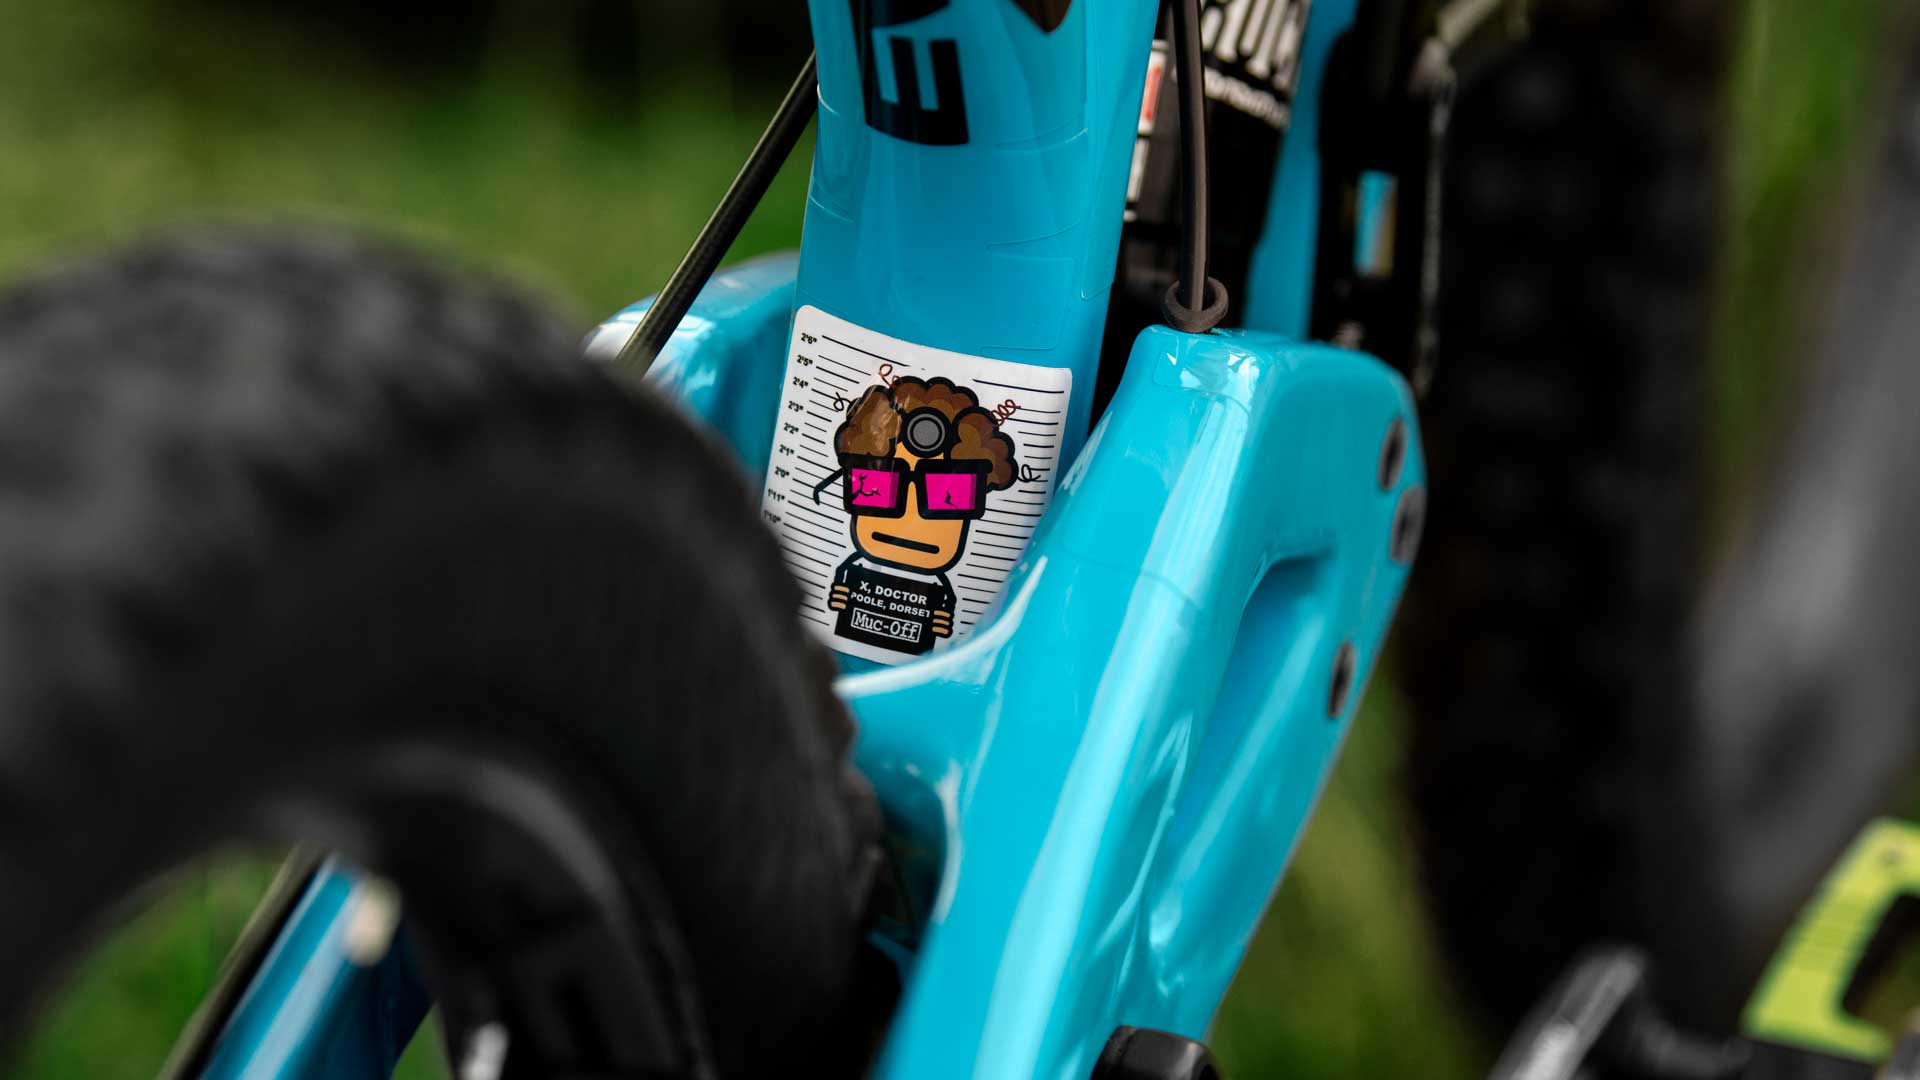 Muc-off doctor sticker on bike frame